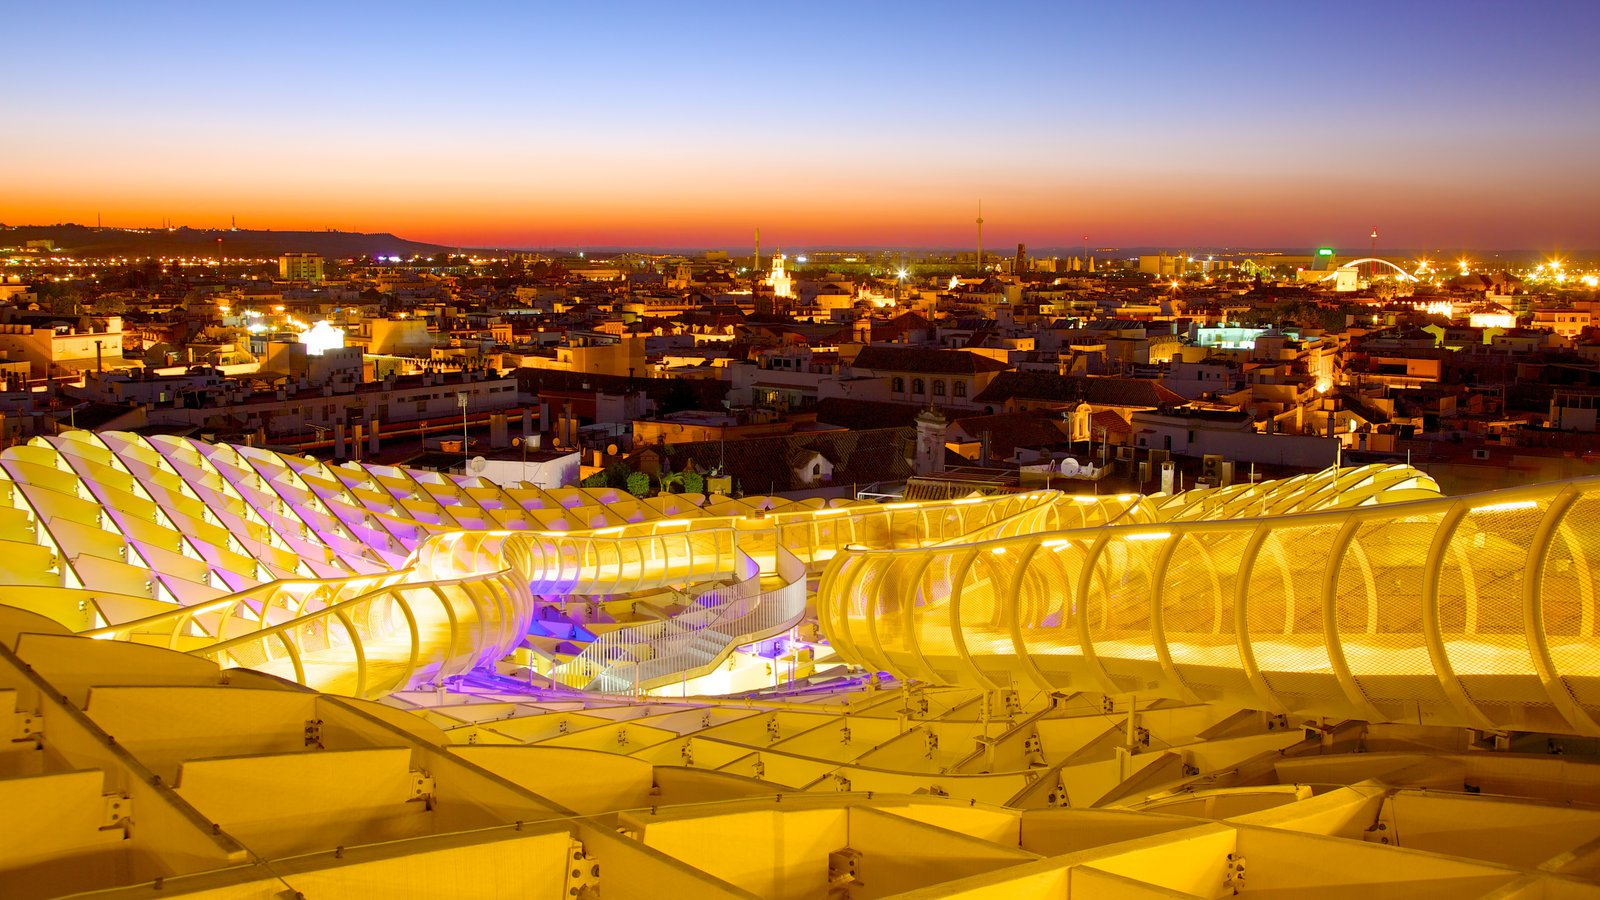 Metropol Parasol which includes a city, a sunset and modern architecture